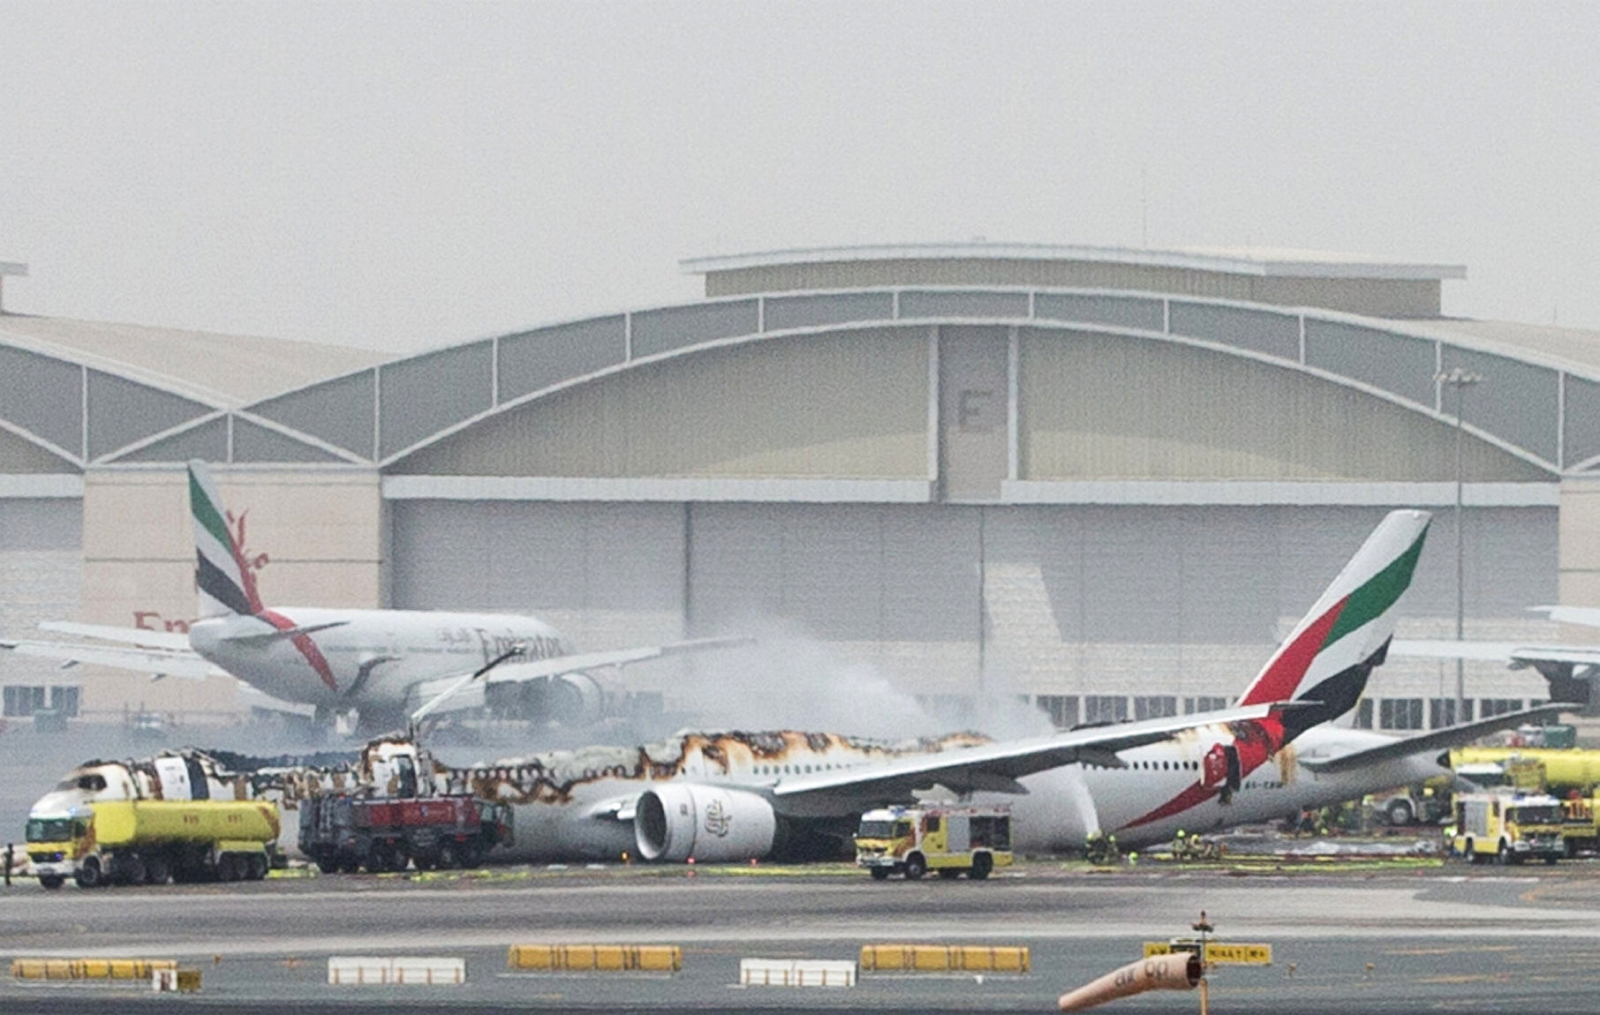 Dubai plane crash-landing